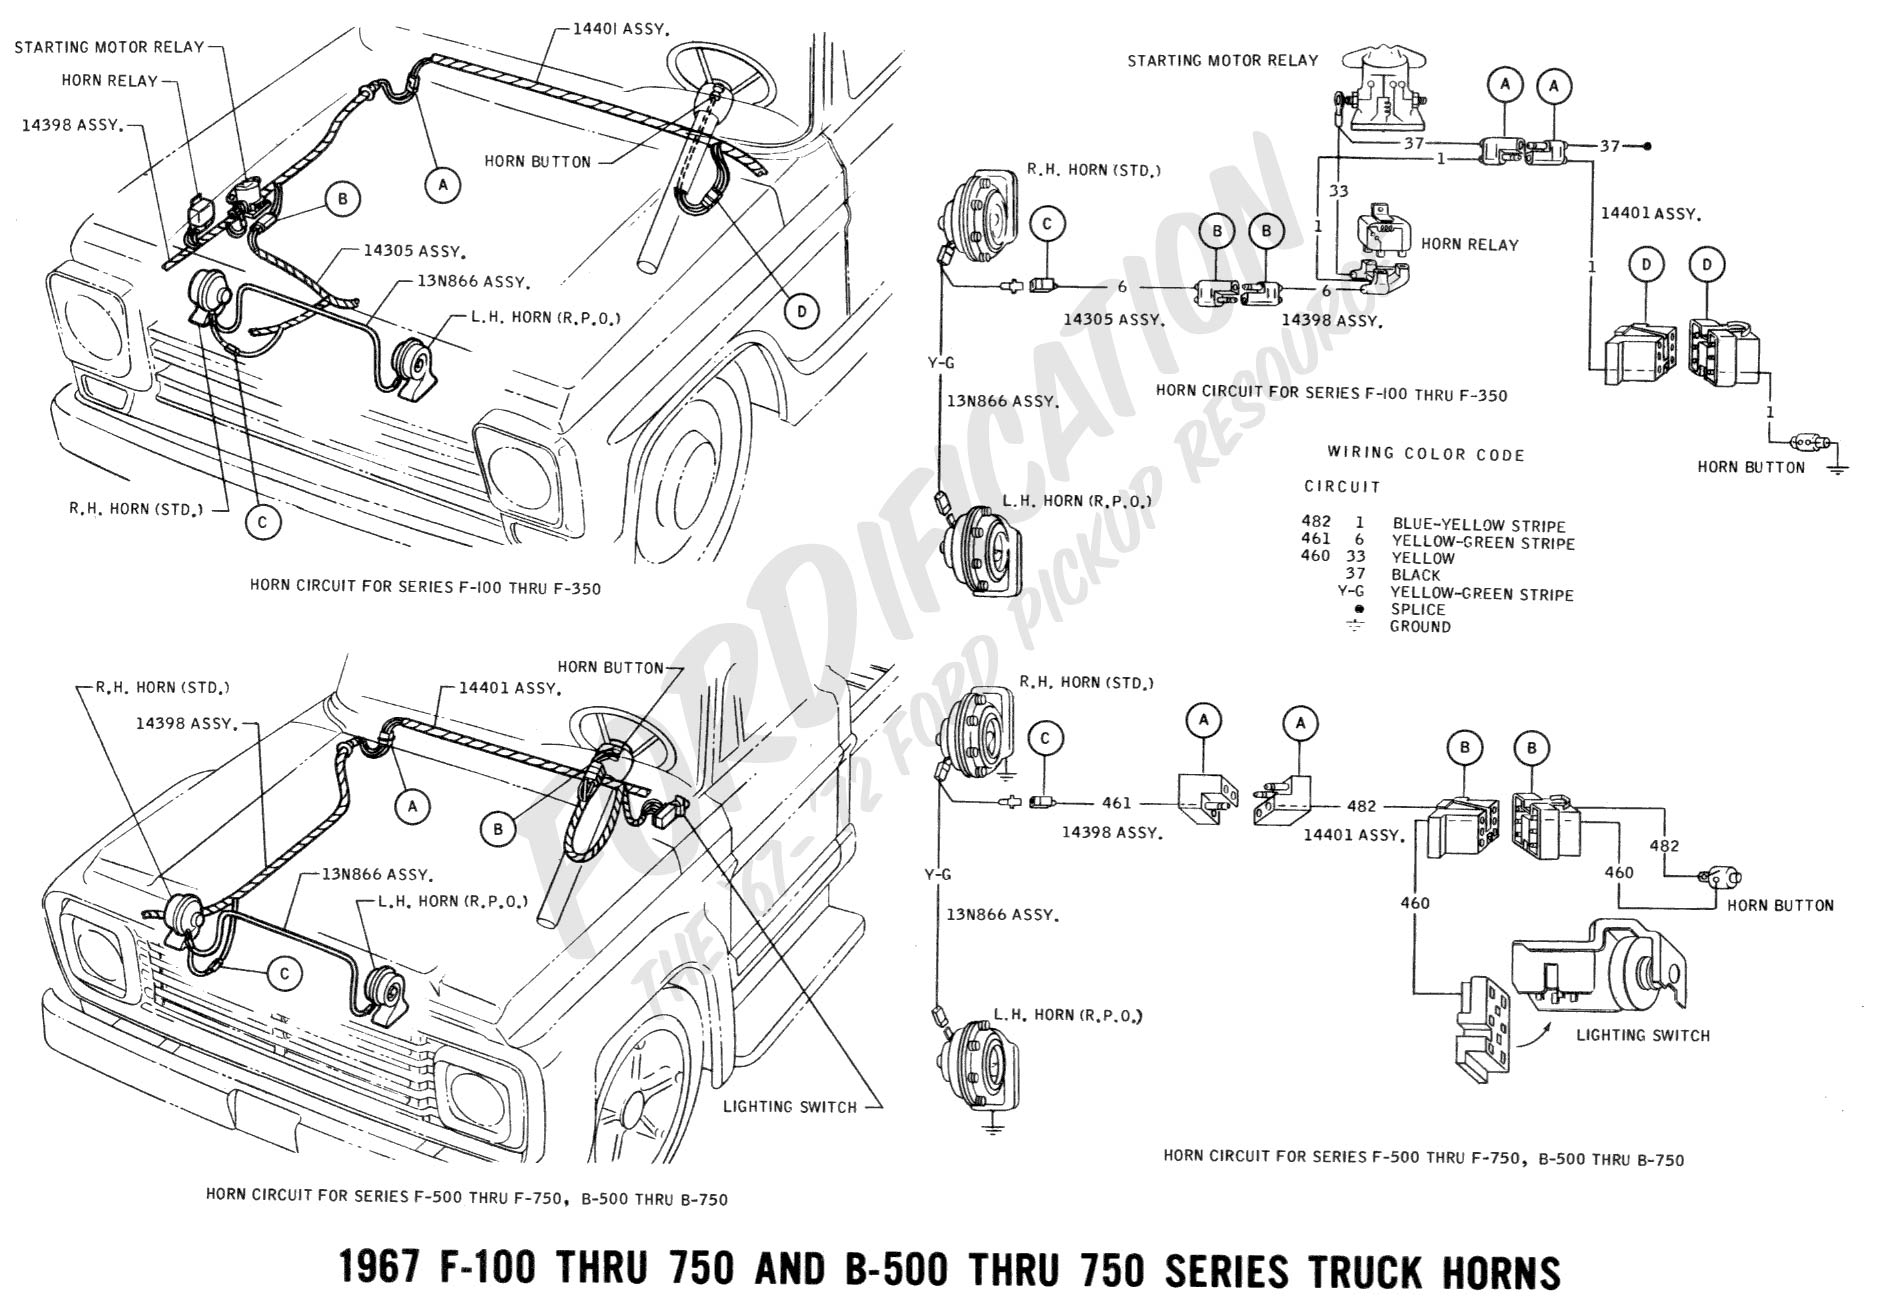 Ford F750 Wiring Auto Electrical Diagram 2000 Expedition Wiper Motor Truck Technical Drawings And Schematics